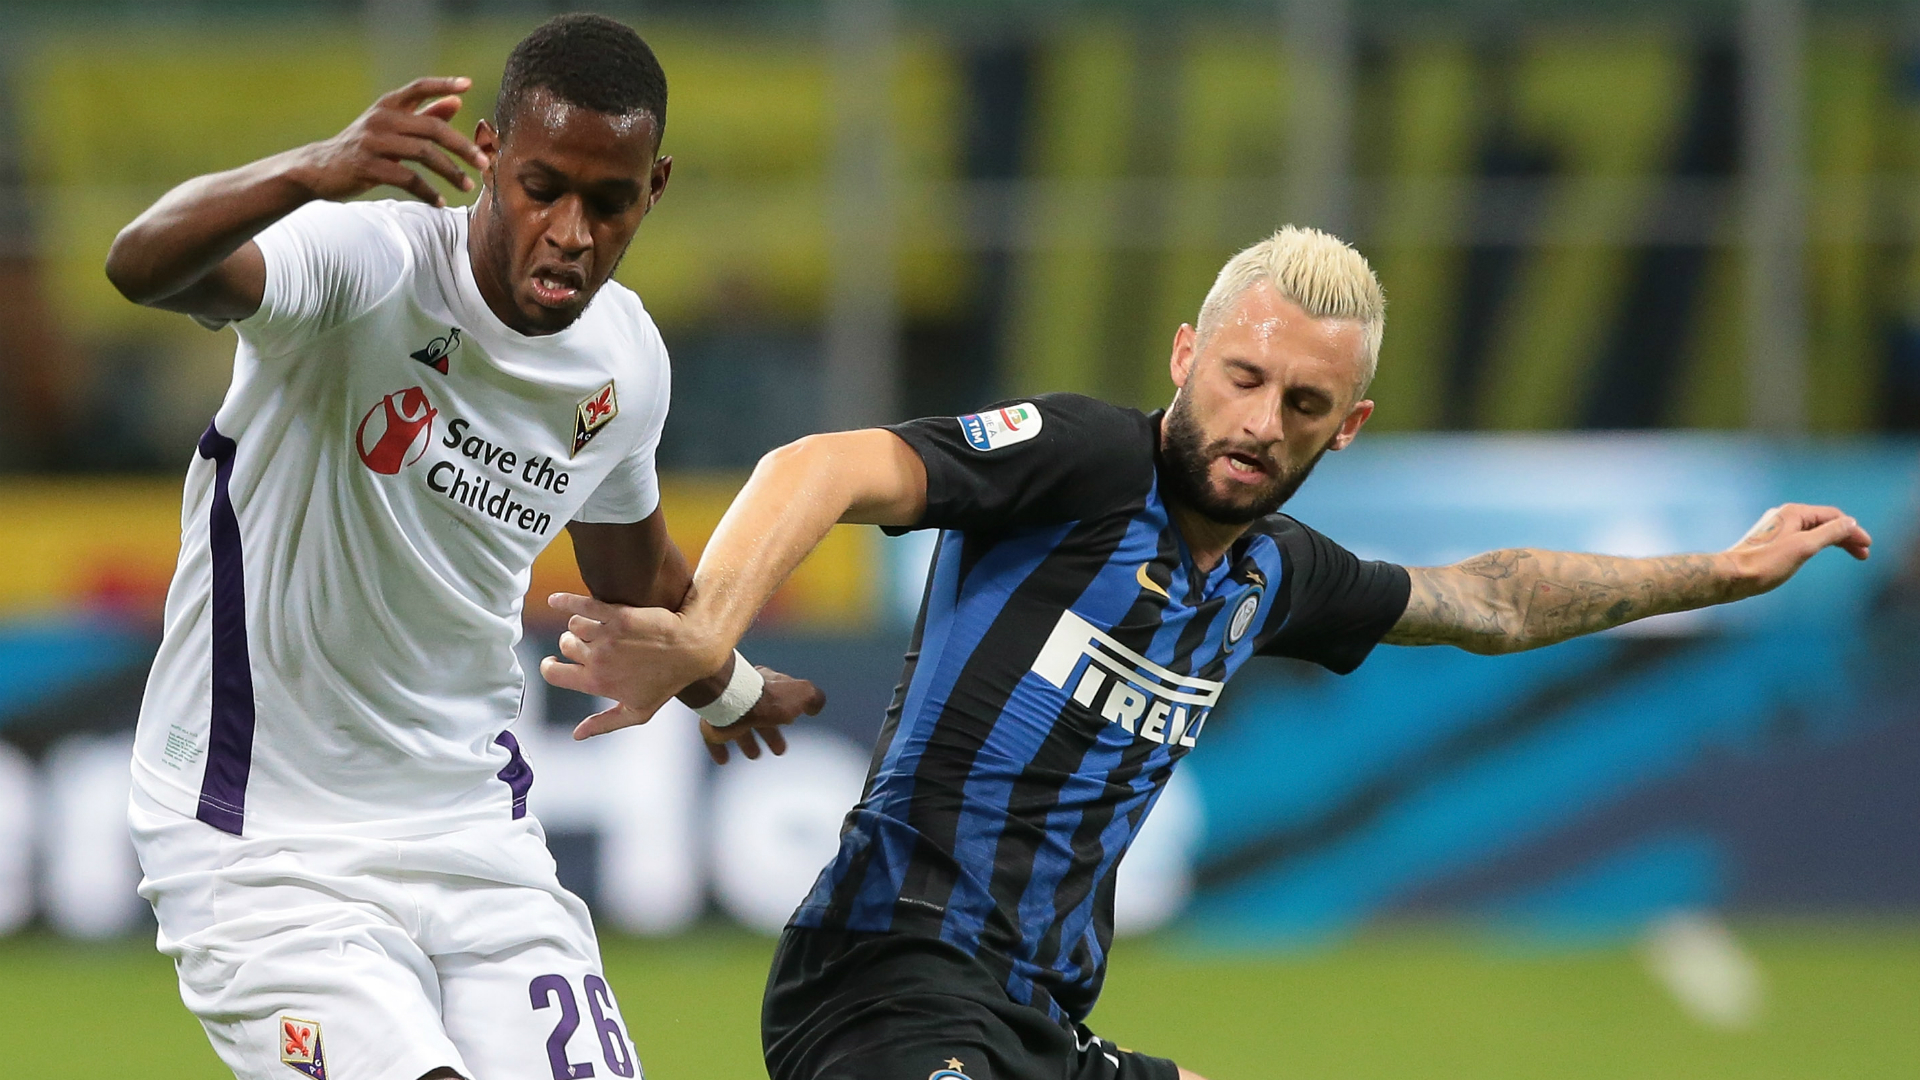 Highlights Serie A, Spal-Inter 1-2: il video dei gol